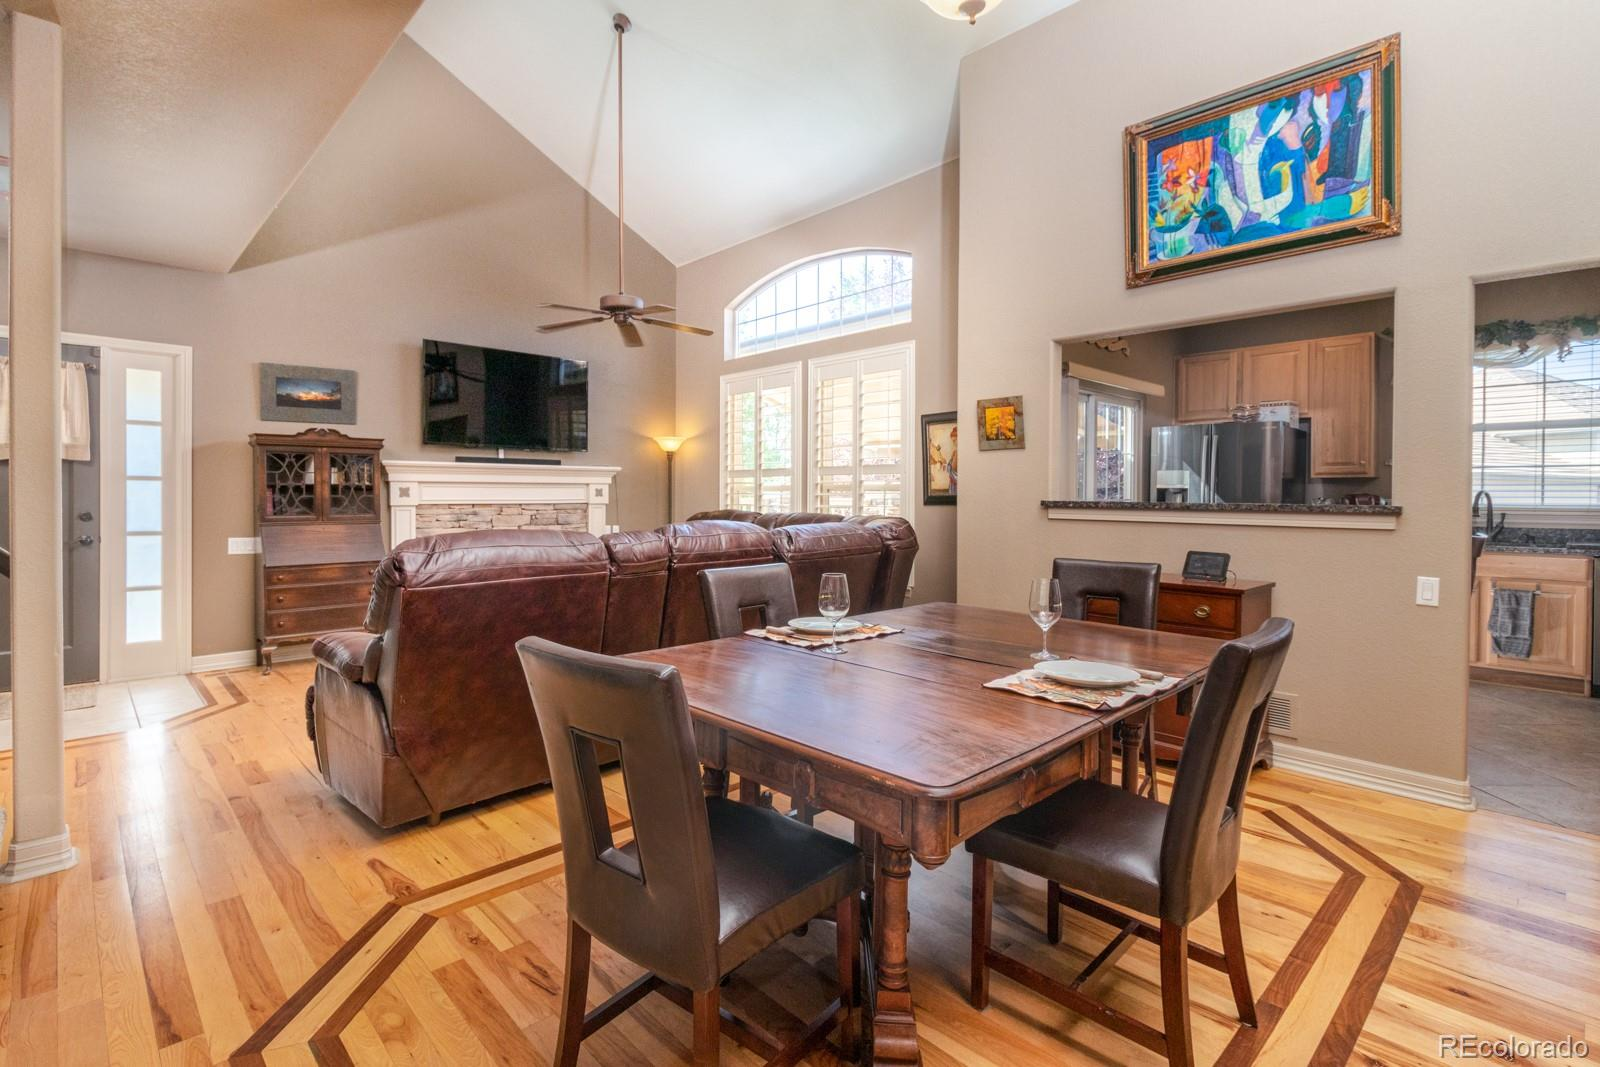 MLS# 7685605 - 11 - 8945 Tappy Toorie Circle, Highlands Ranch, CO 80129